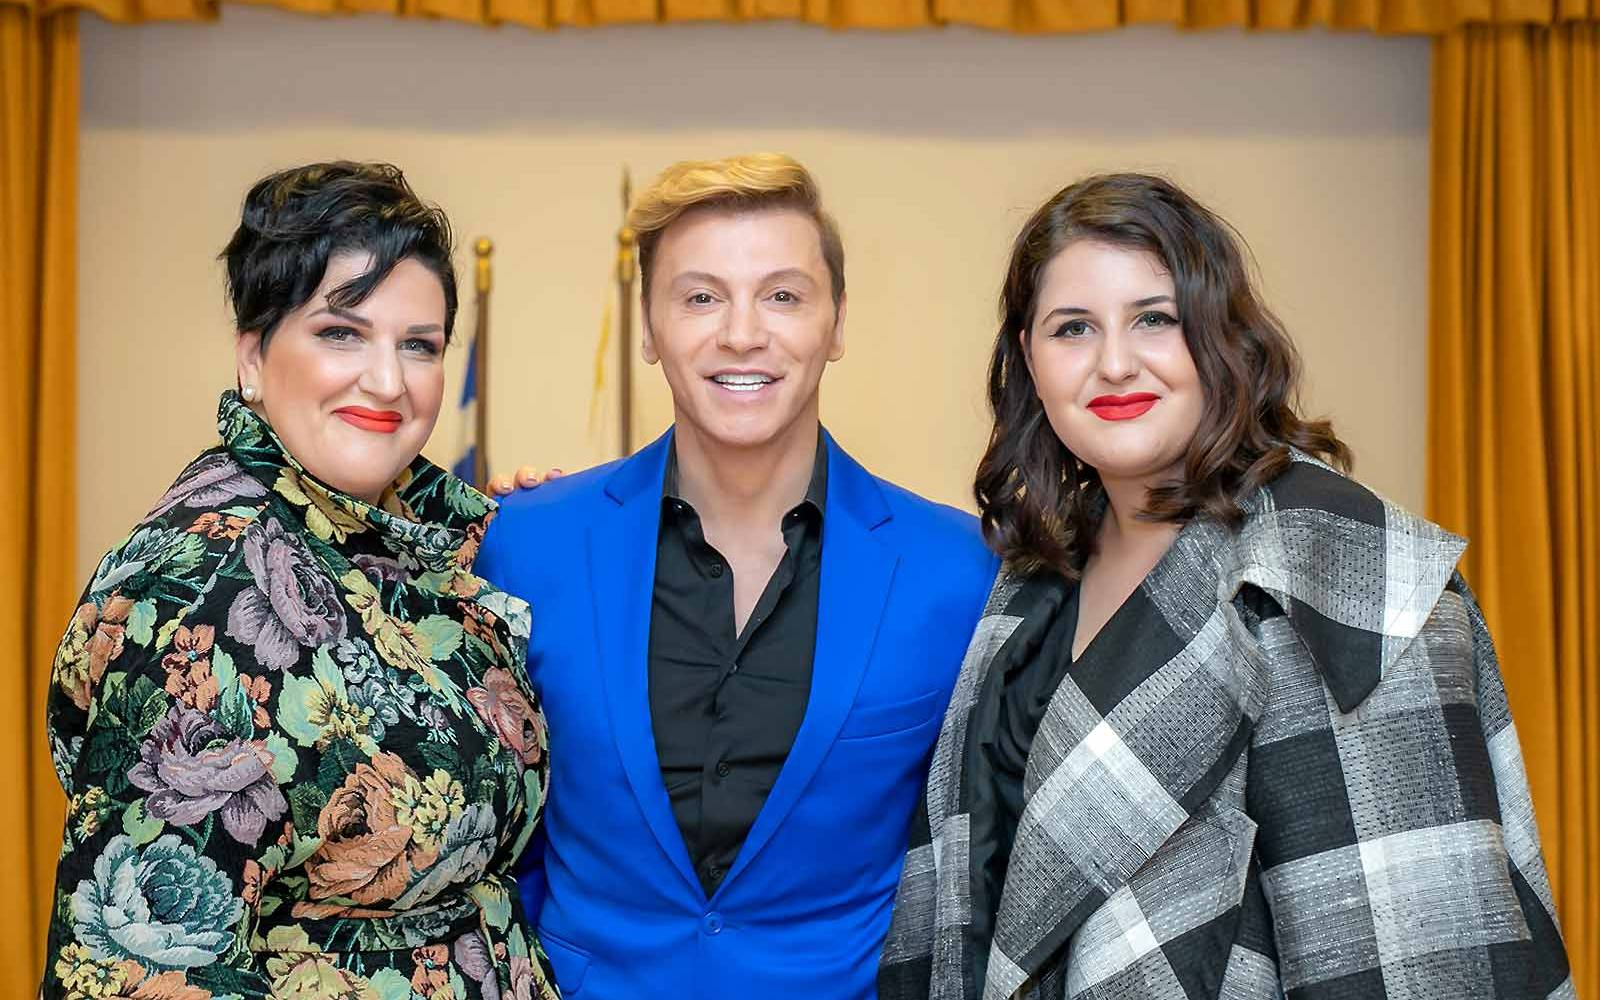 anna-maria-rogdai-president-of-EGYPA-with-Takis-Zaxaratos-and-Dora-Papamichalopoulou